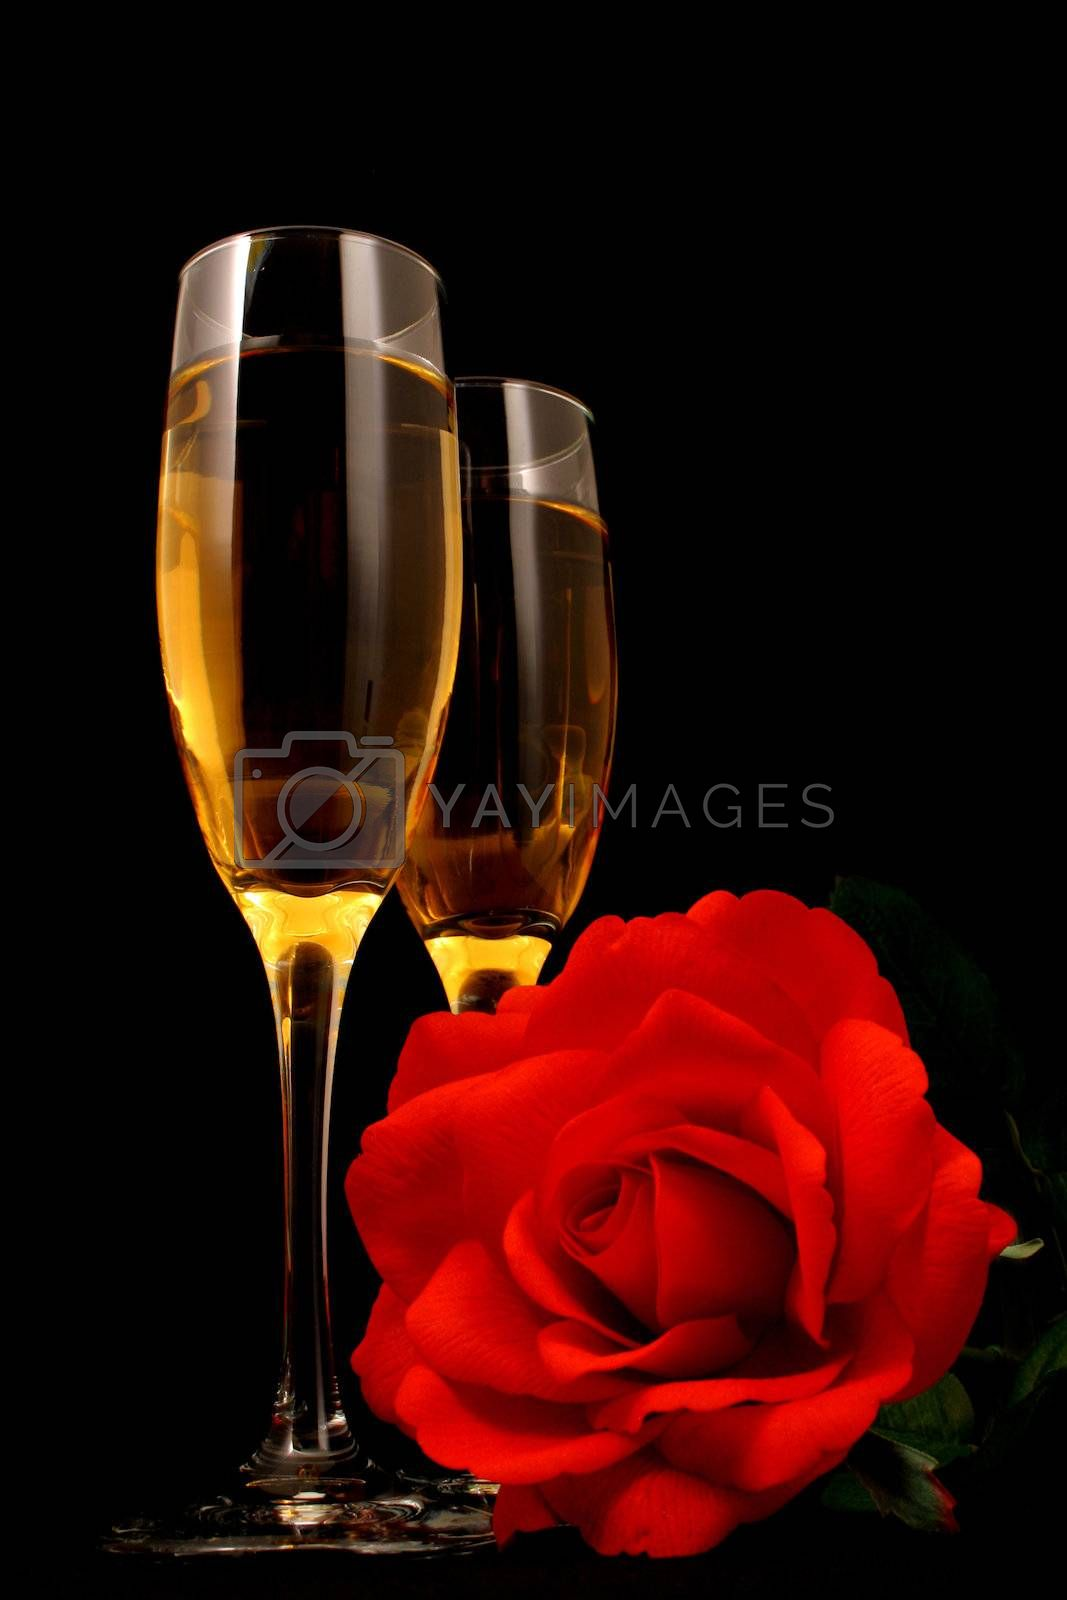 Wine in glasses with a rose all on a black background with mood lighting